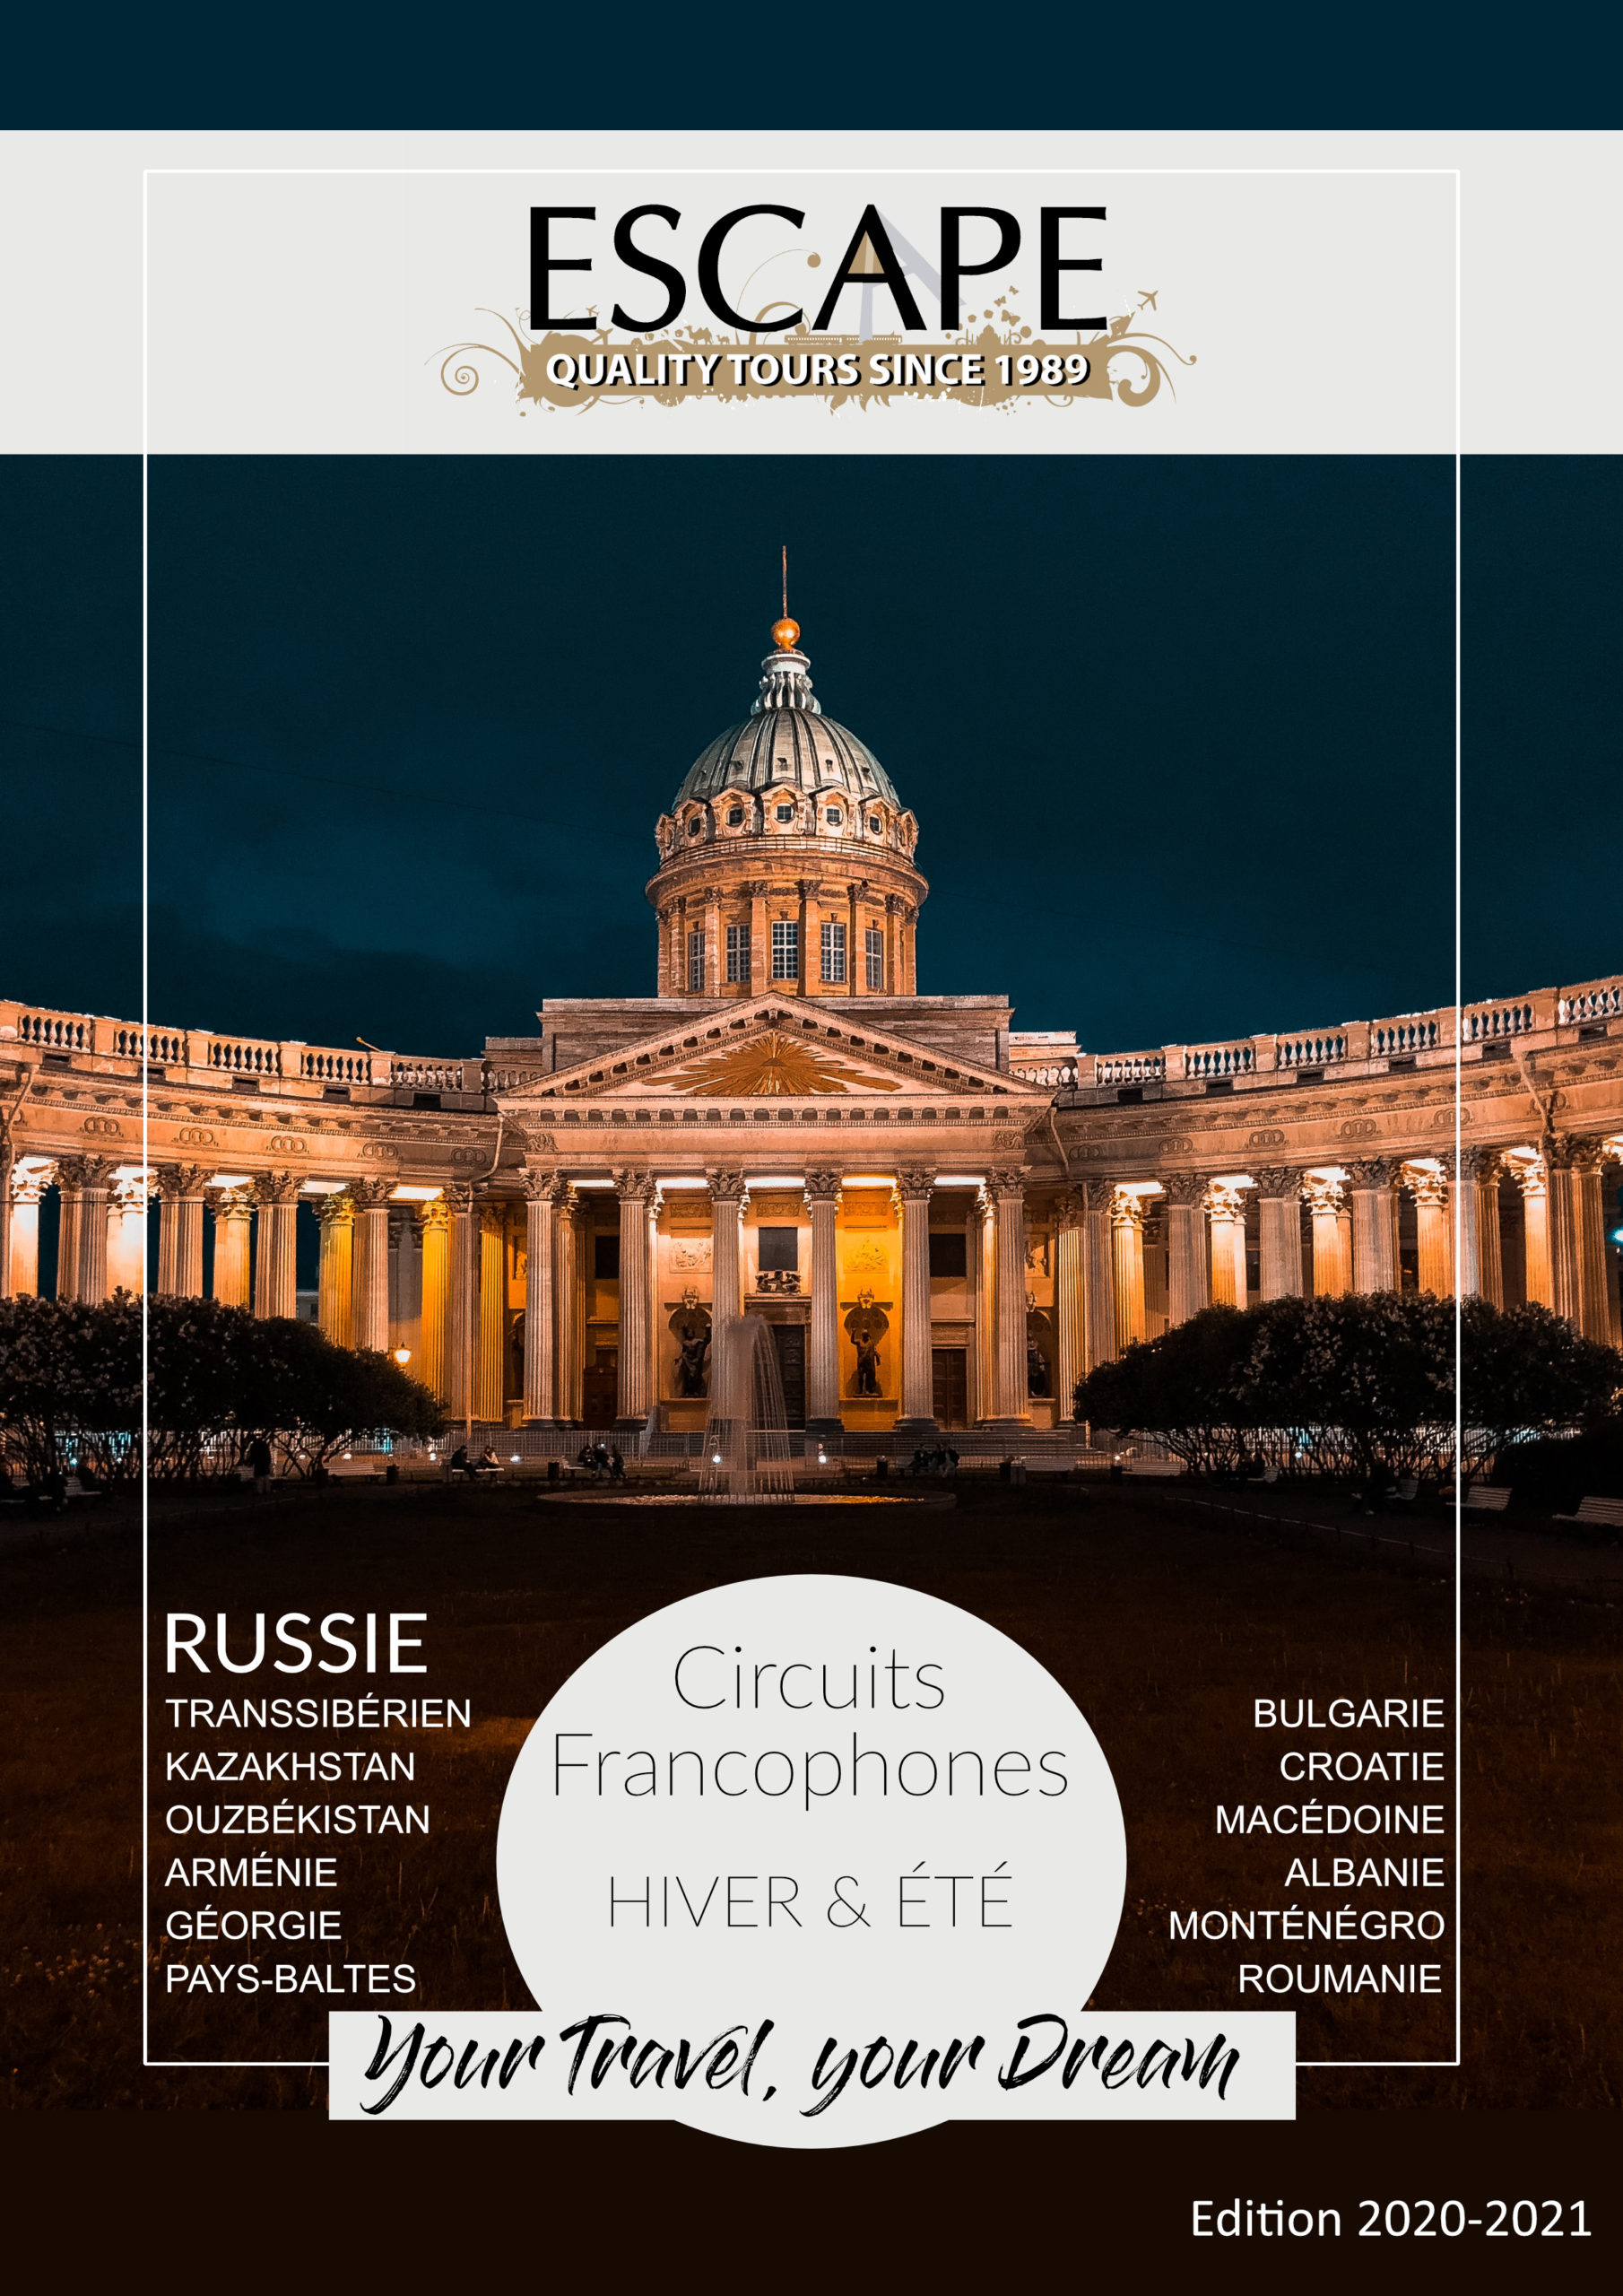 Escape - CoverPage Europe-Russie 2019-2020